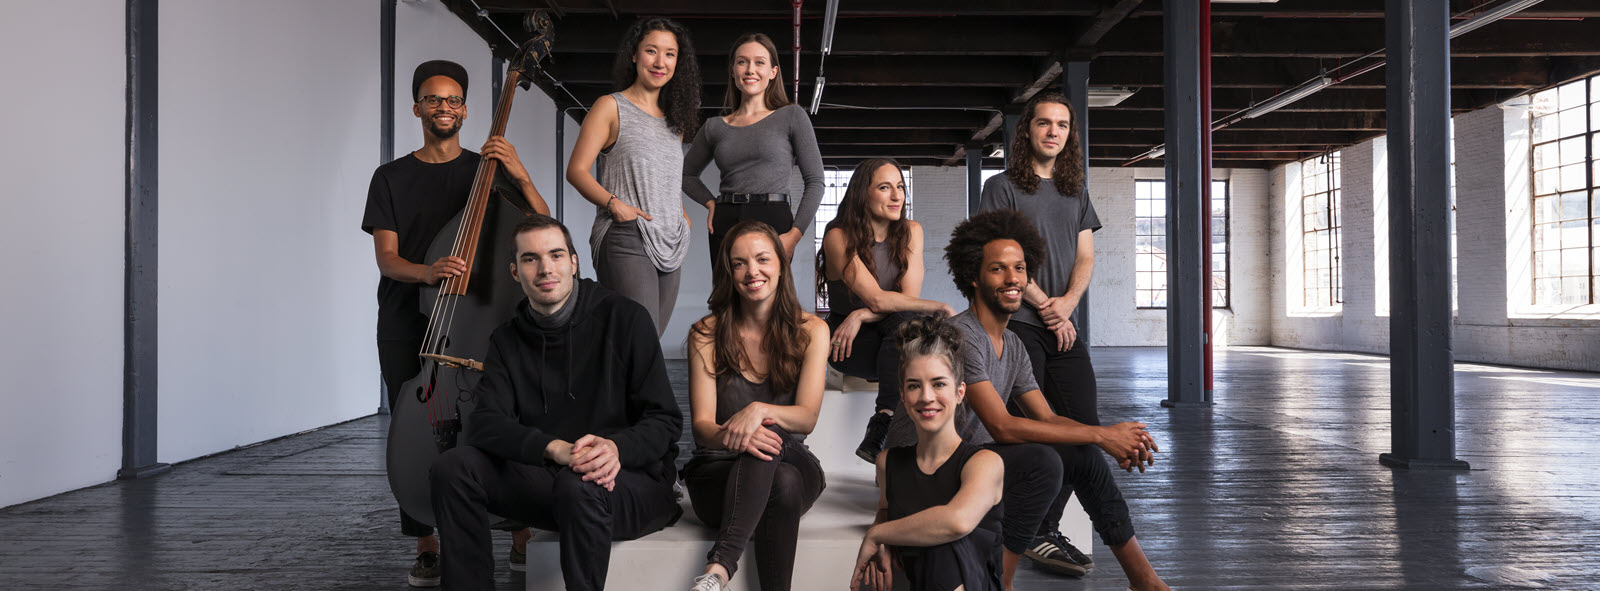 Select to access video of First Republic Arts client(s) Dorrance Dance